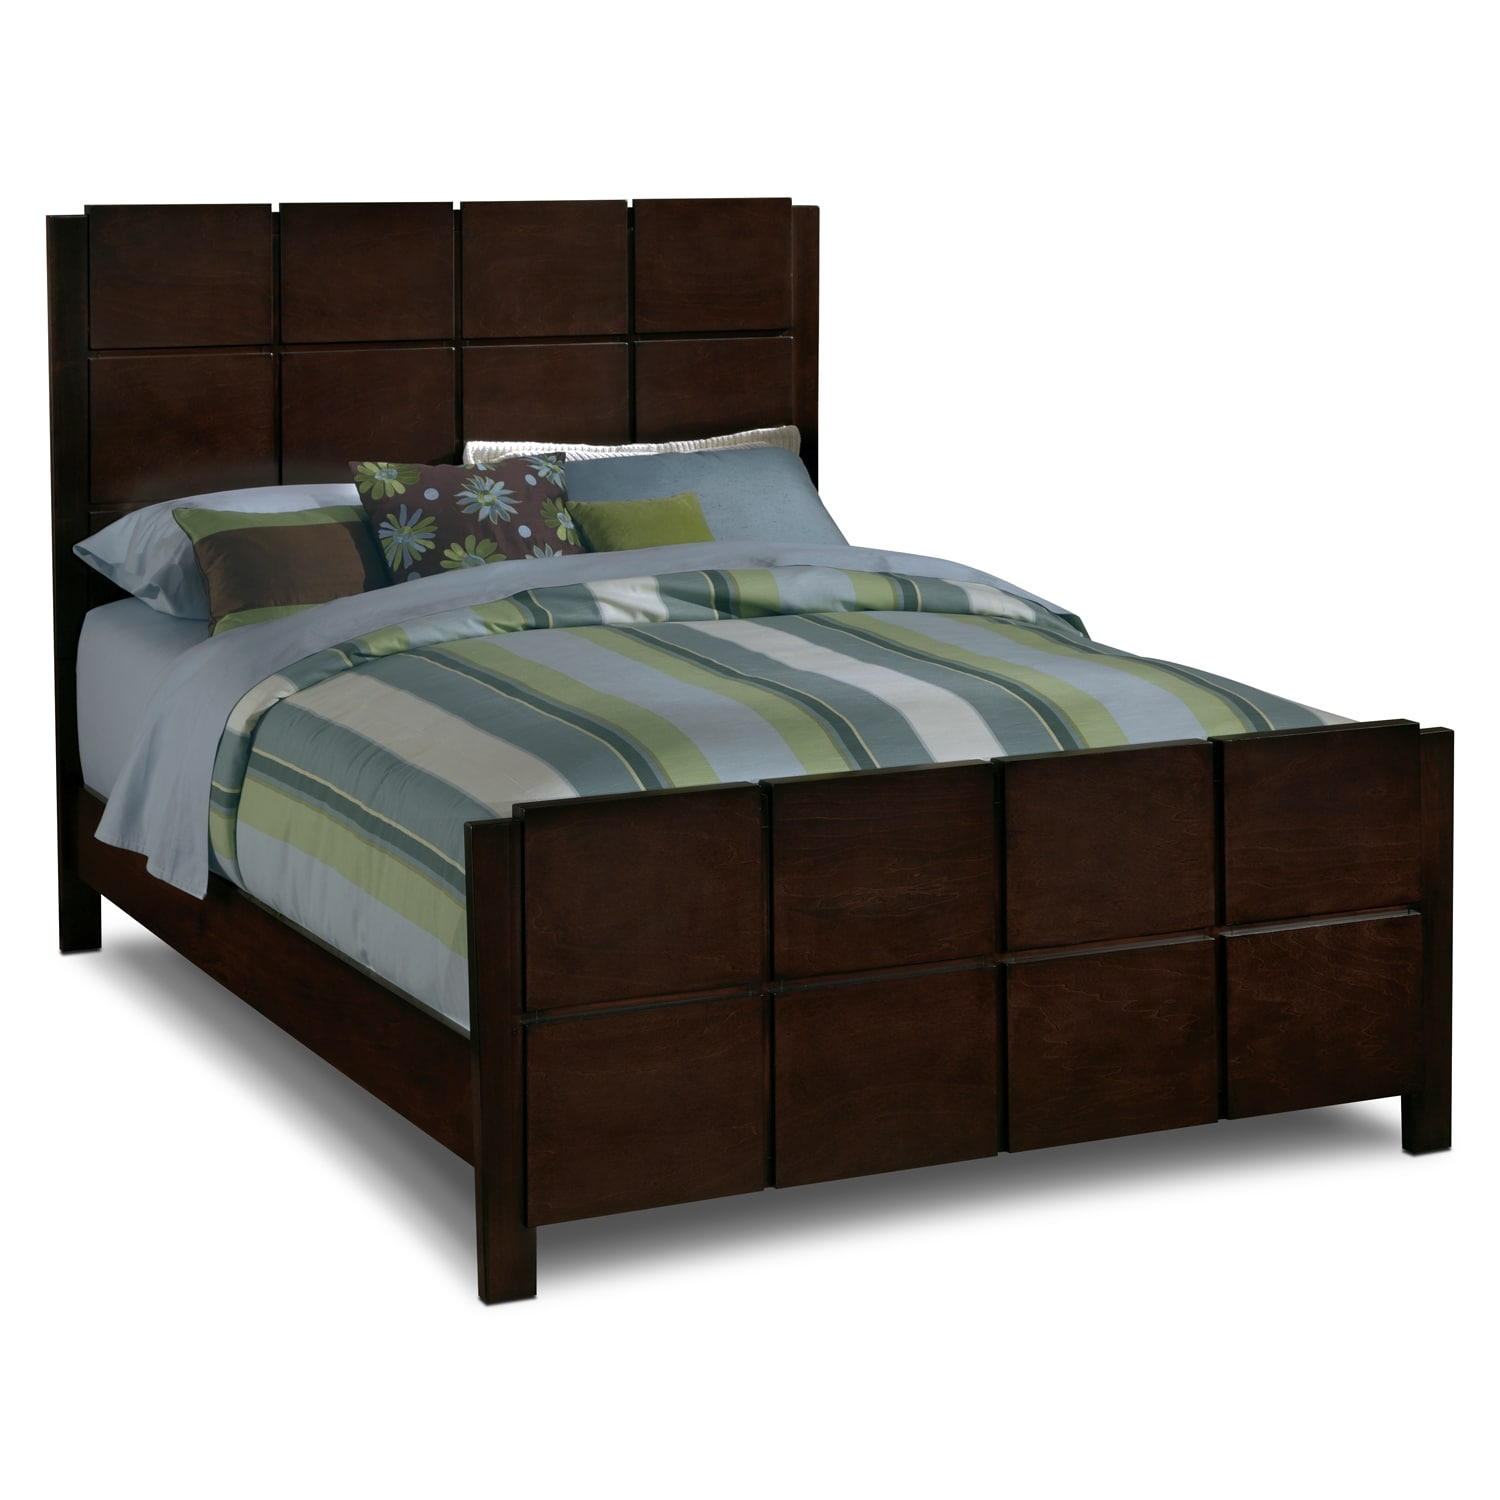 Mosaic queen bed value city furniture for Bed set queen furniture